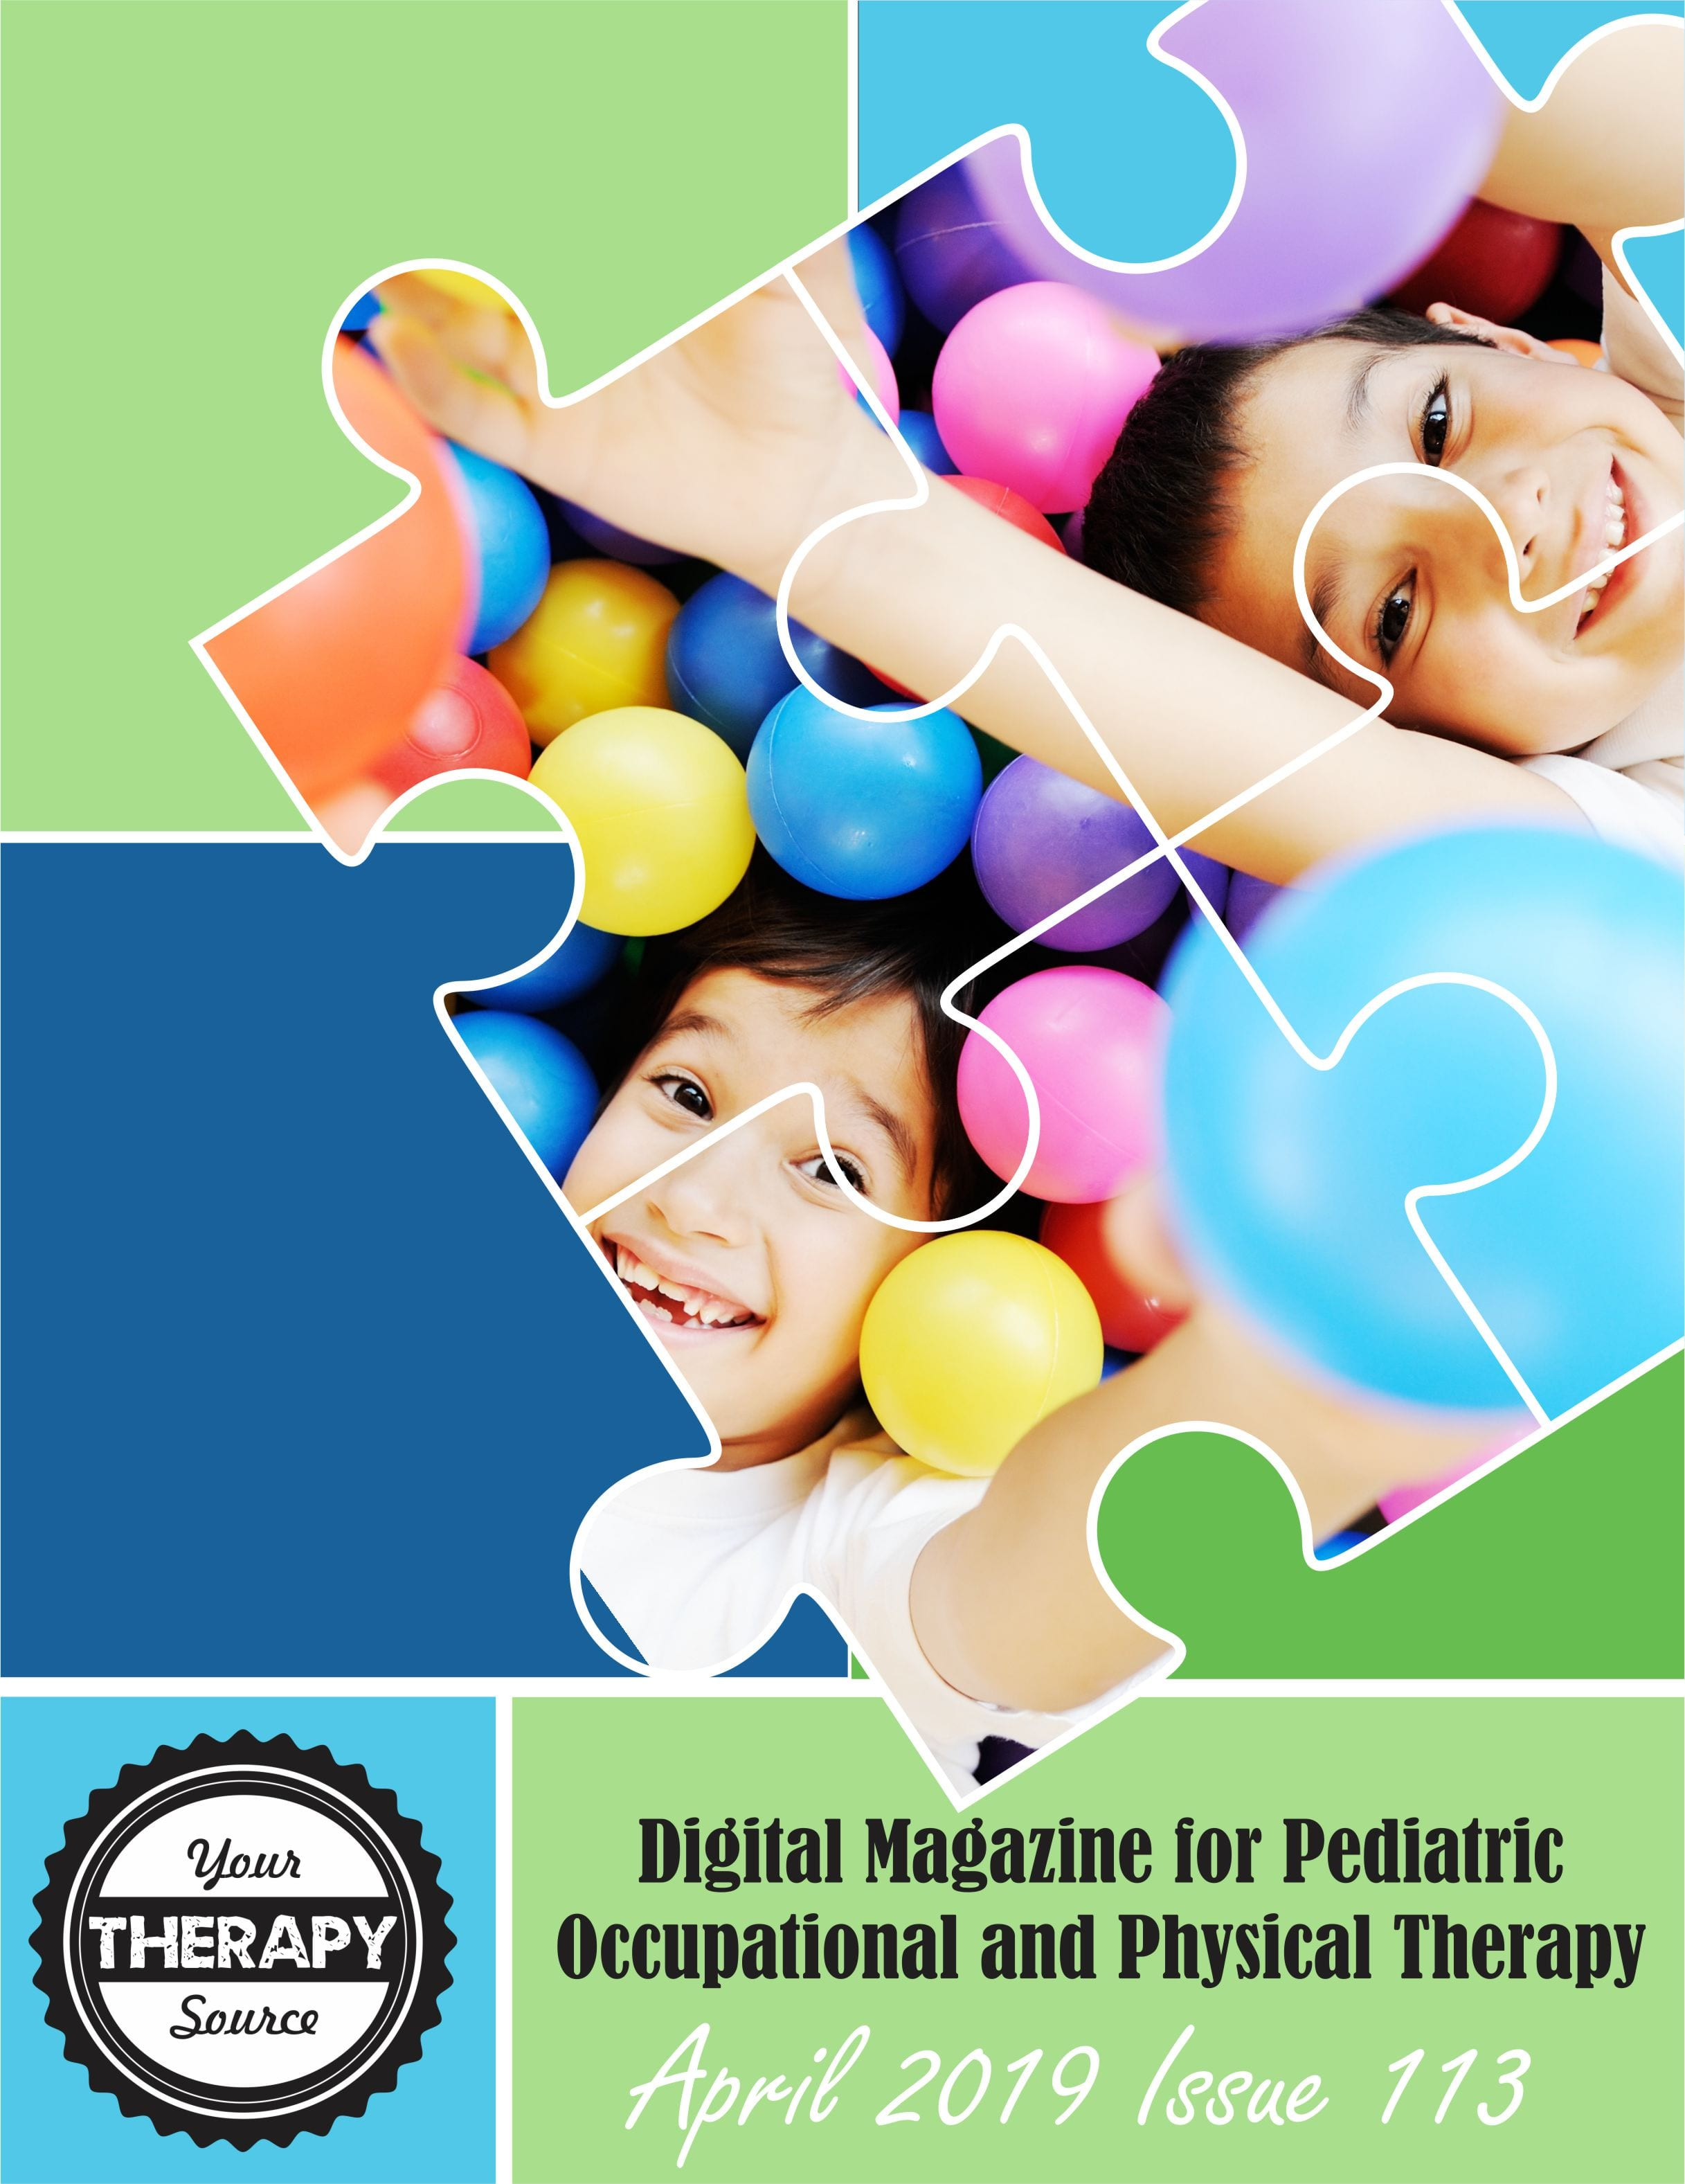 The April 2019 Your Therapy Source Digital Magazine has been published. Access your FREE issue loaded with research and activity ideas.